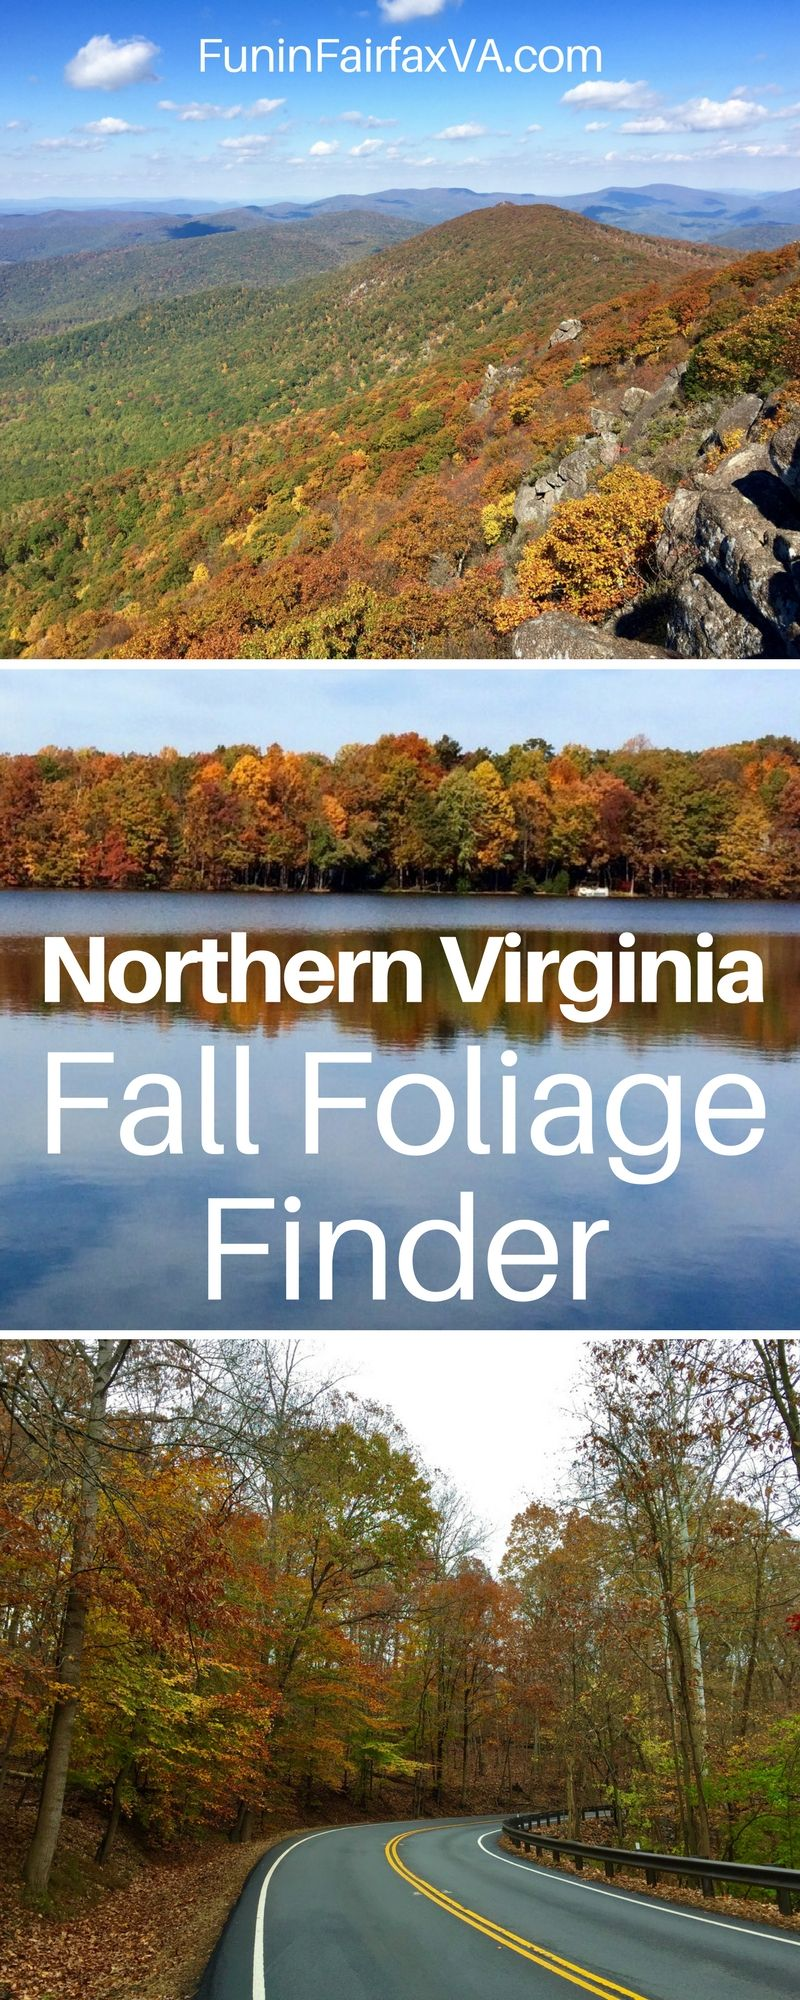 Mid Atlantic Usa Fall Travel Find The Best Places To See Northern Virginia Foliage For Locals And Visitors Seeking Beautiful Autumn Colors Fun